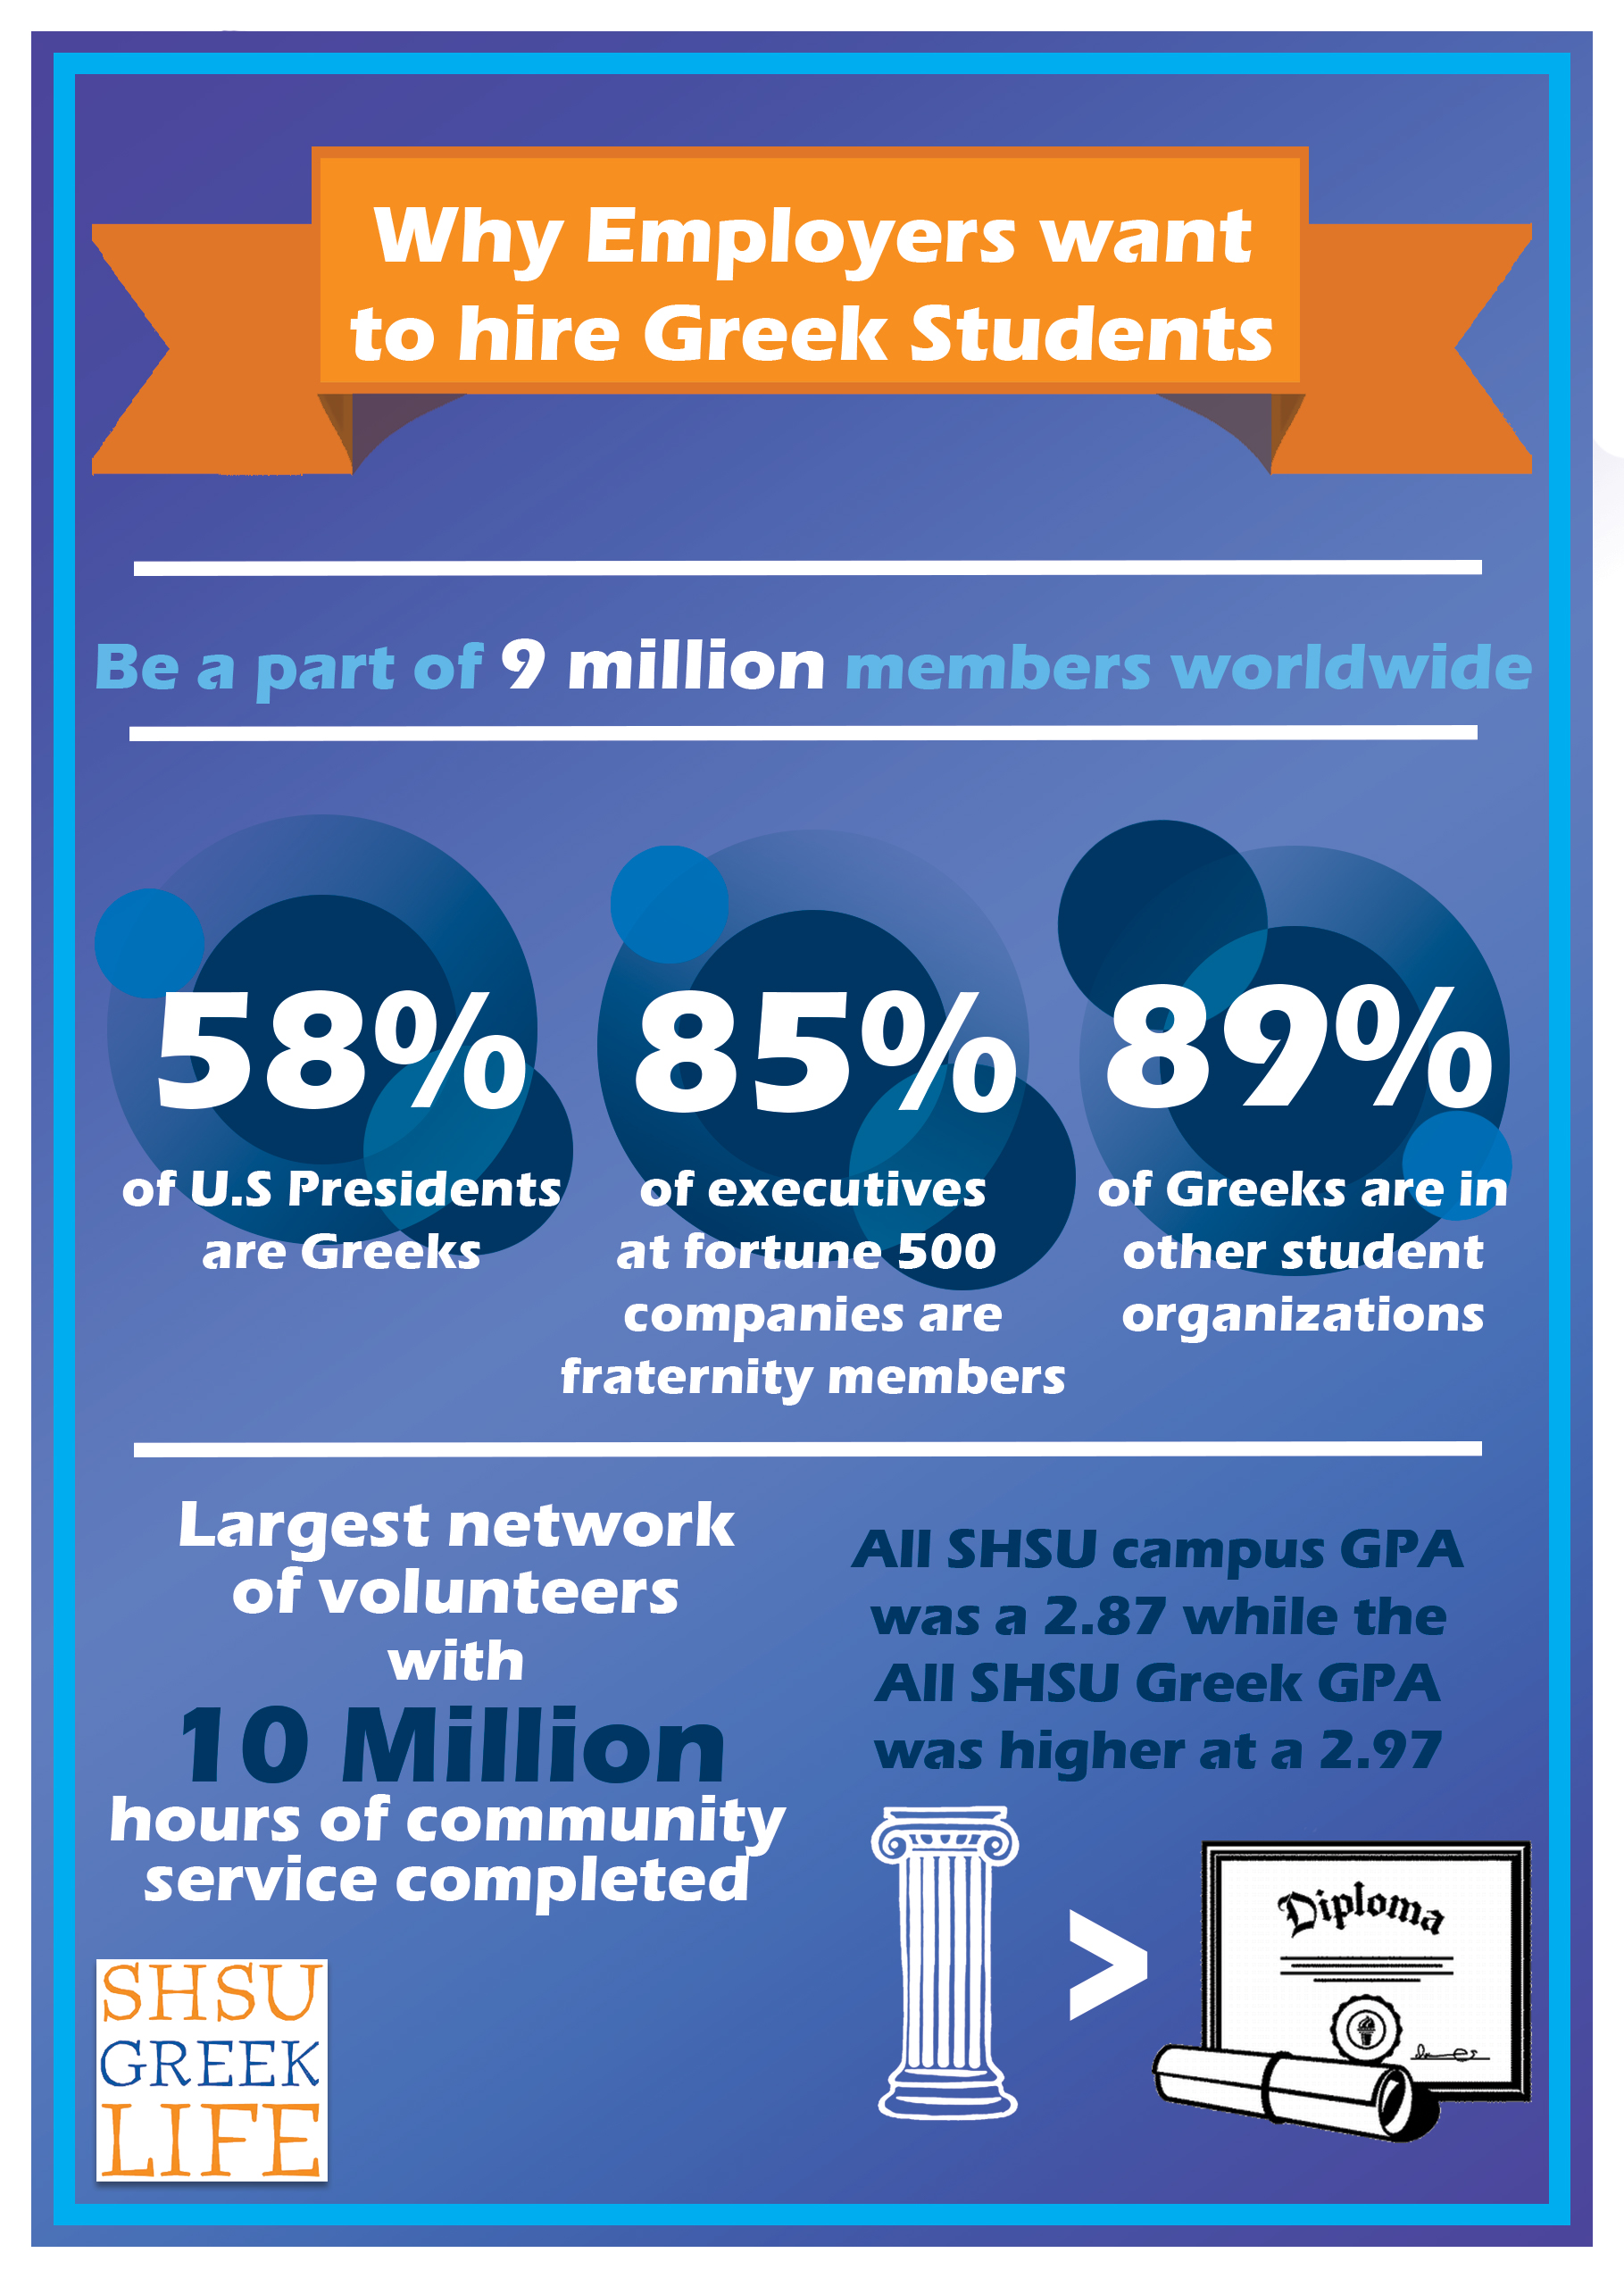 Why hire Greeks infographic. Shows that many presidents and executives are Greeks.